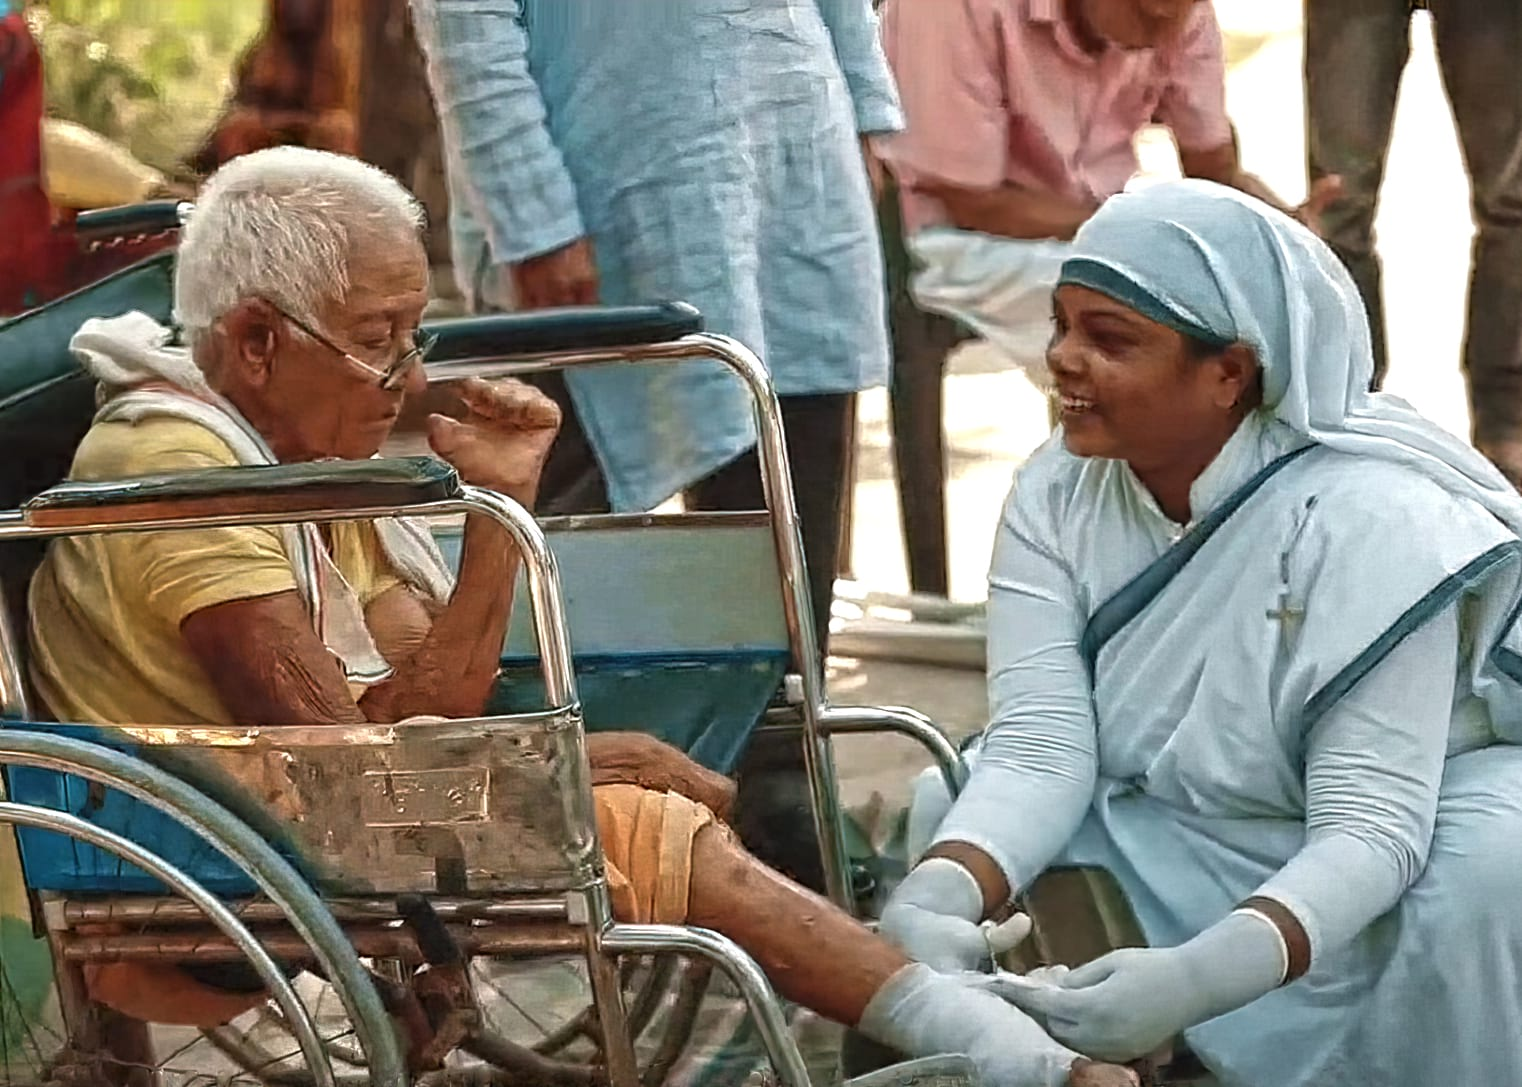 Geeta, Sisters of Compassion, cleans and bandages the wounds of a leprosy patient